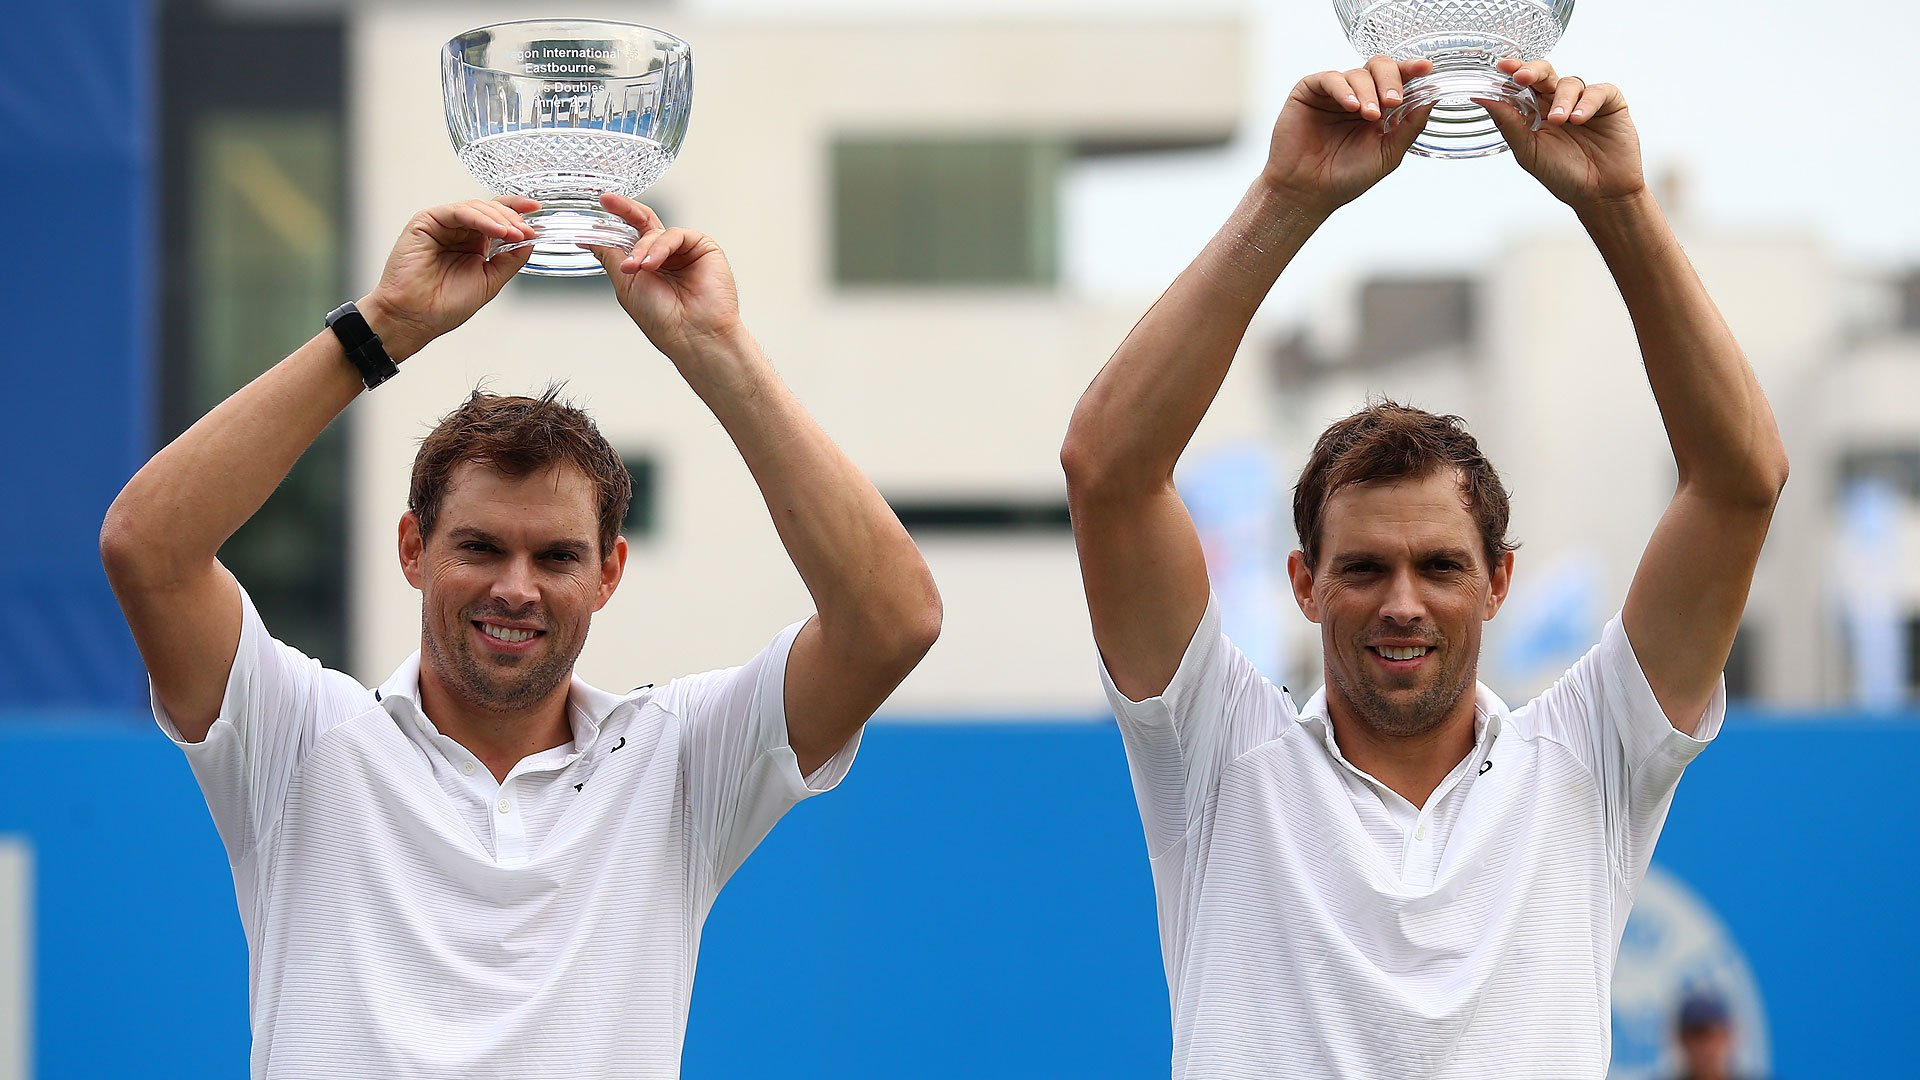 The @Bryanbros pick up their 113th #ATP doubles title at the #AegonInternational. Read: https://t.co/n22I6EfJtc https://t.co/F4CACbbyFU